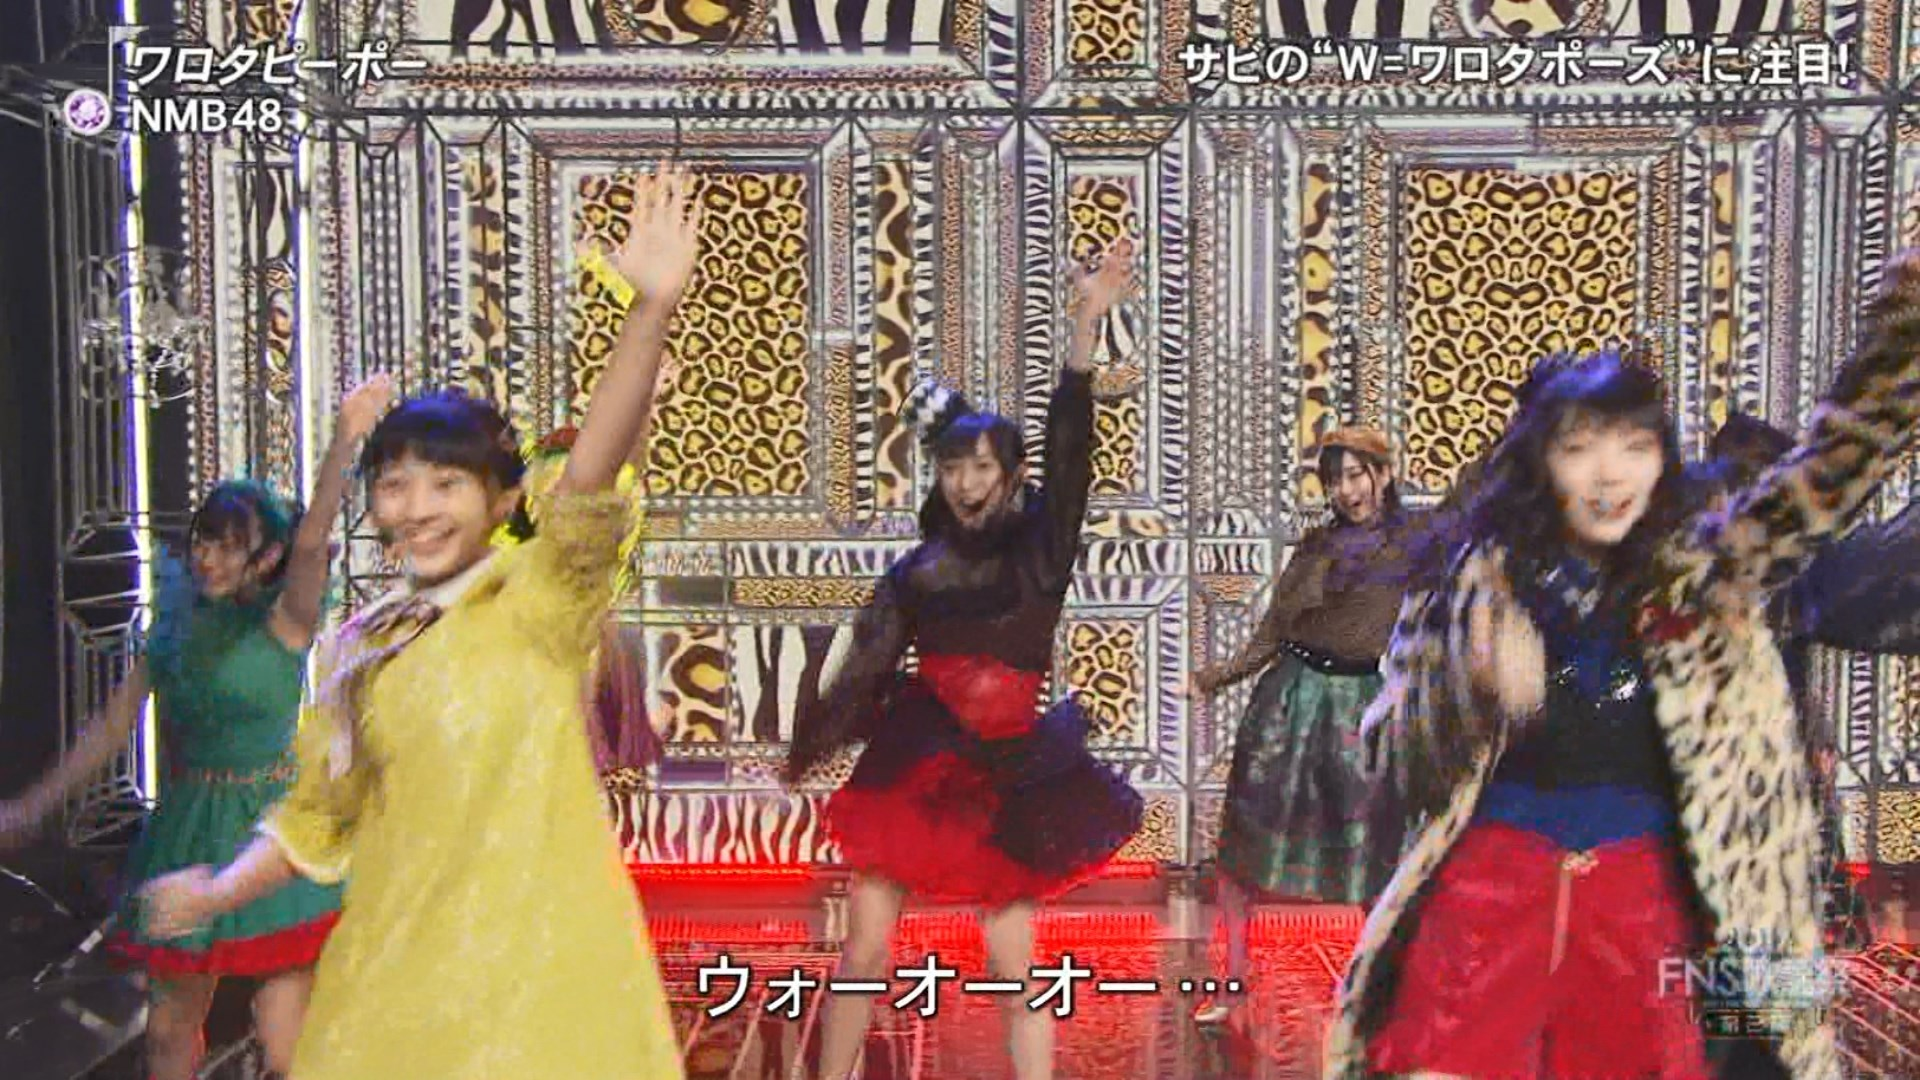 2017FNS歌謡祭第2夜・NMB48ワロタピーポーキャプ-088